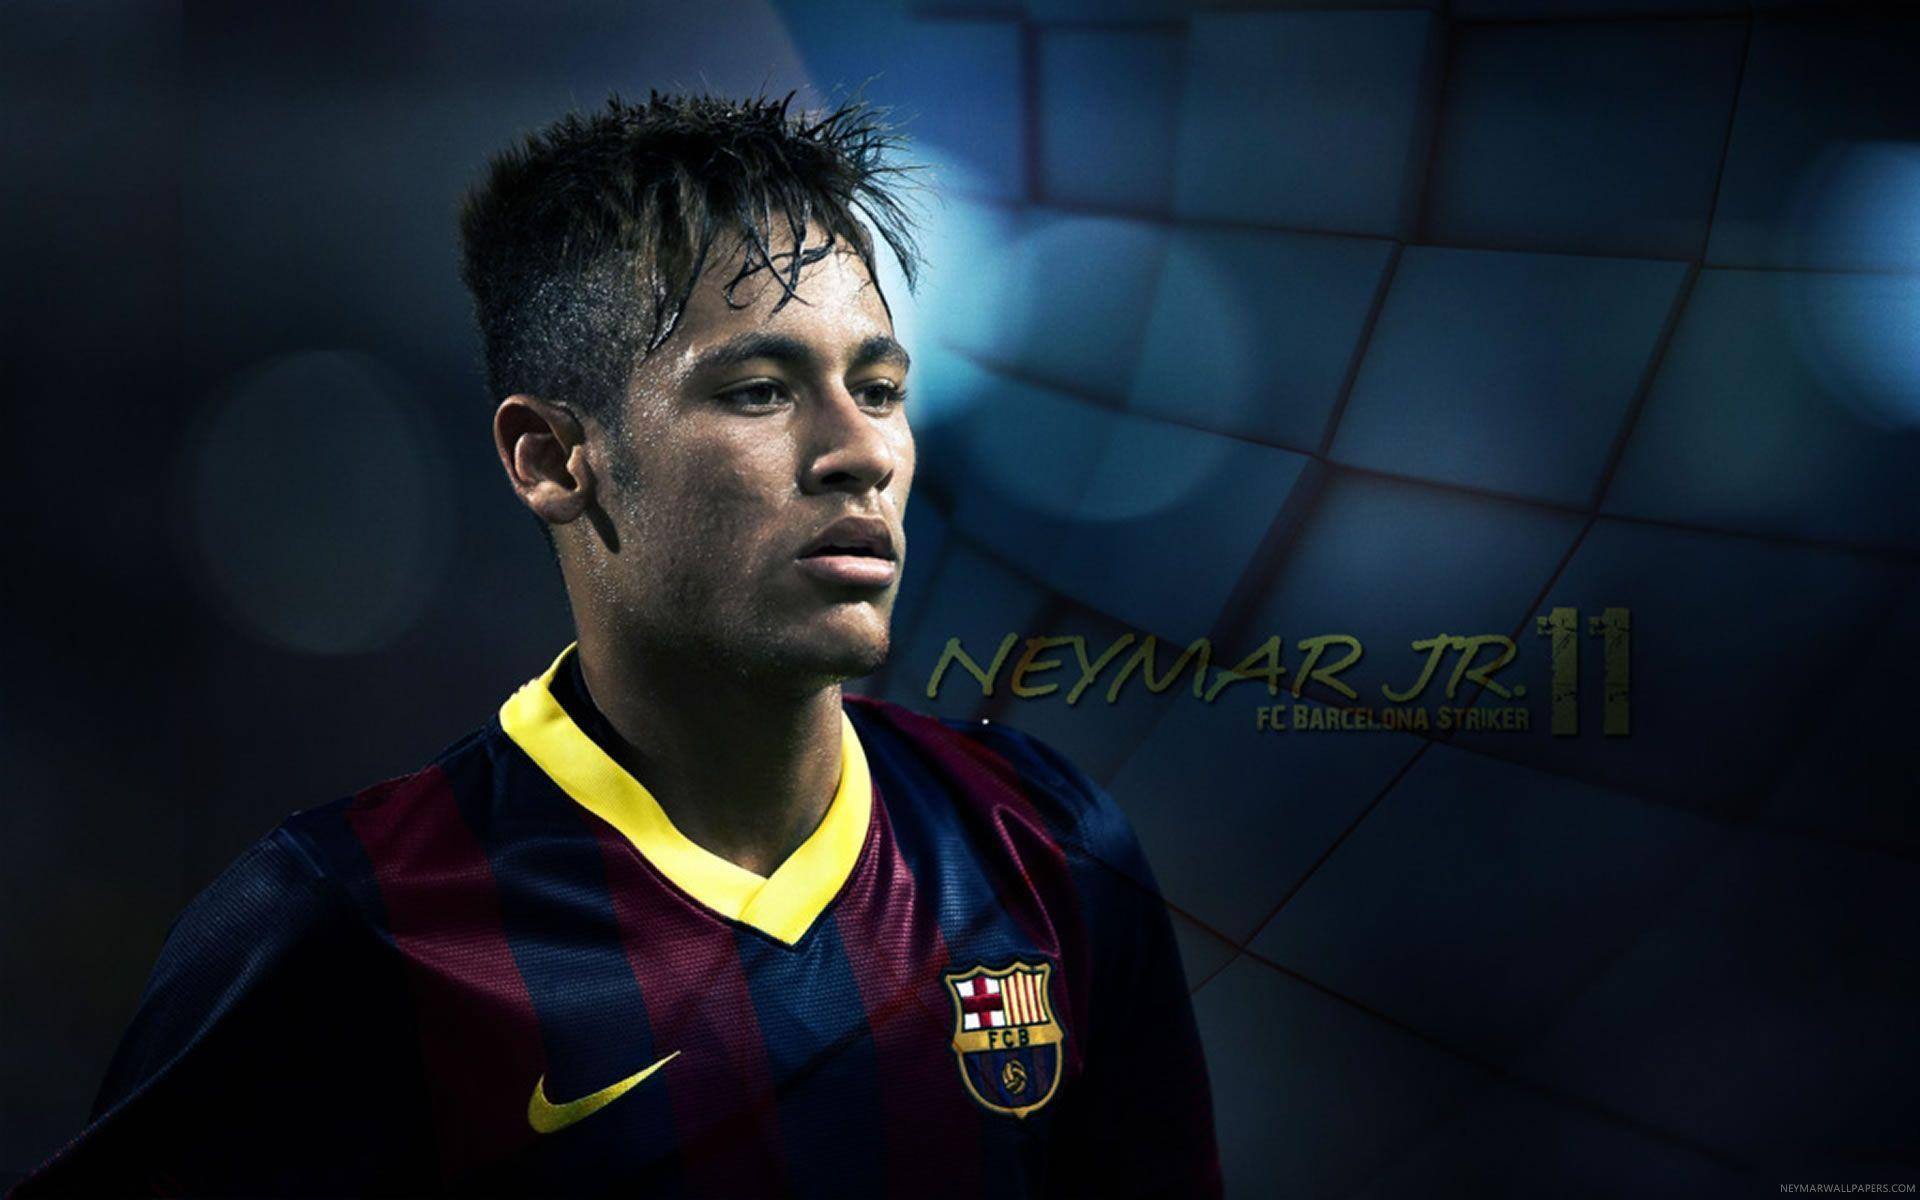 Neymar Jr Wallpaper for iPhone - WallpaperSafari